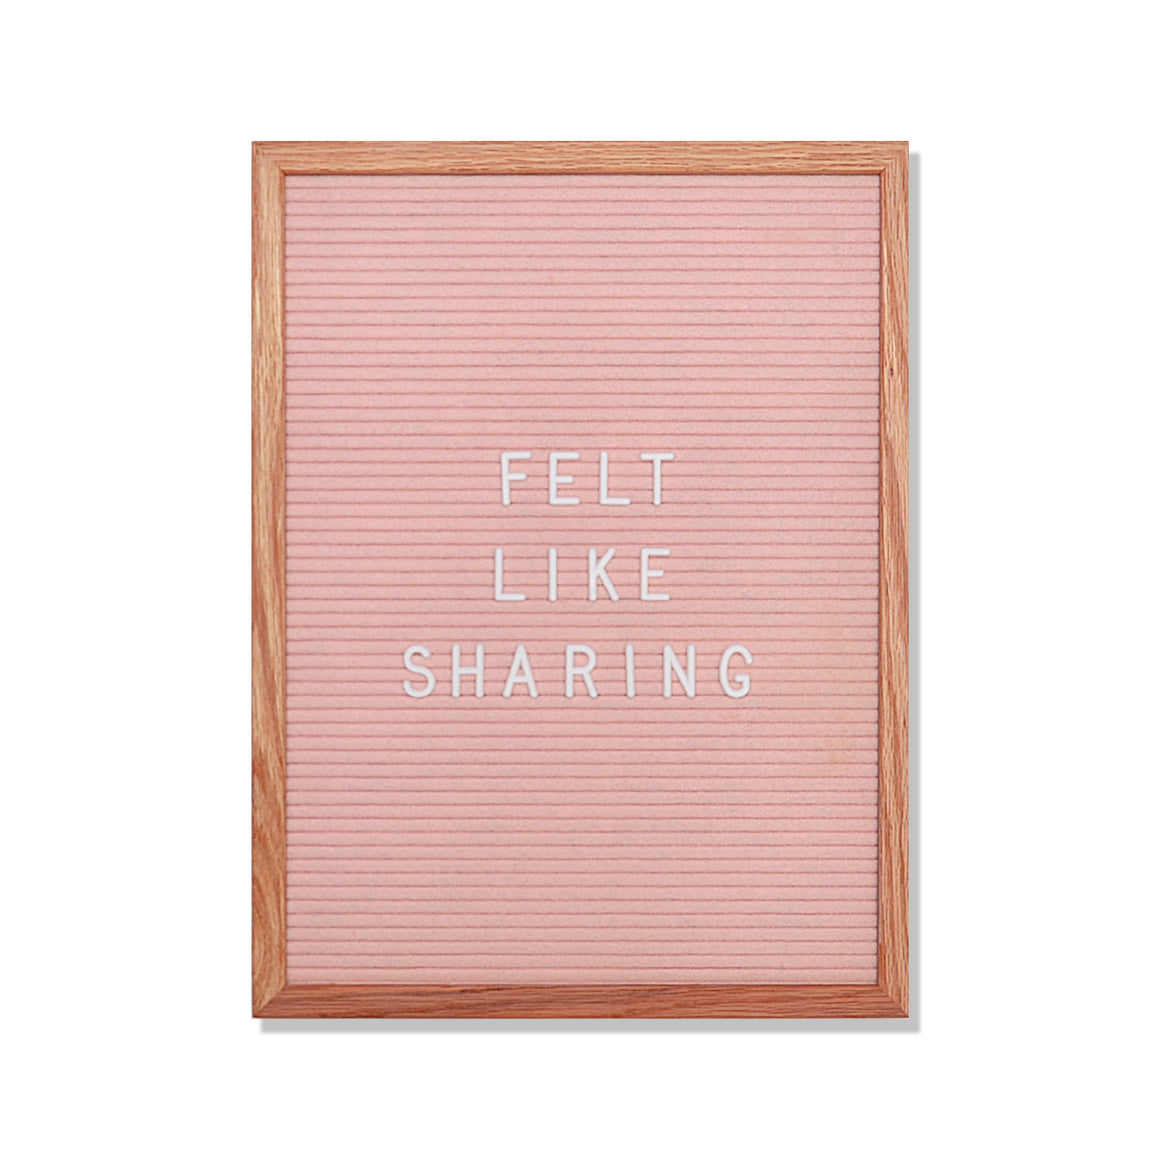 "Chatter: 12"" x 16"", Light Pink 